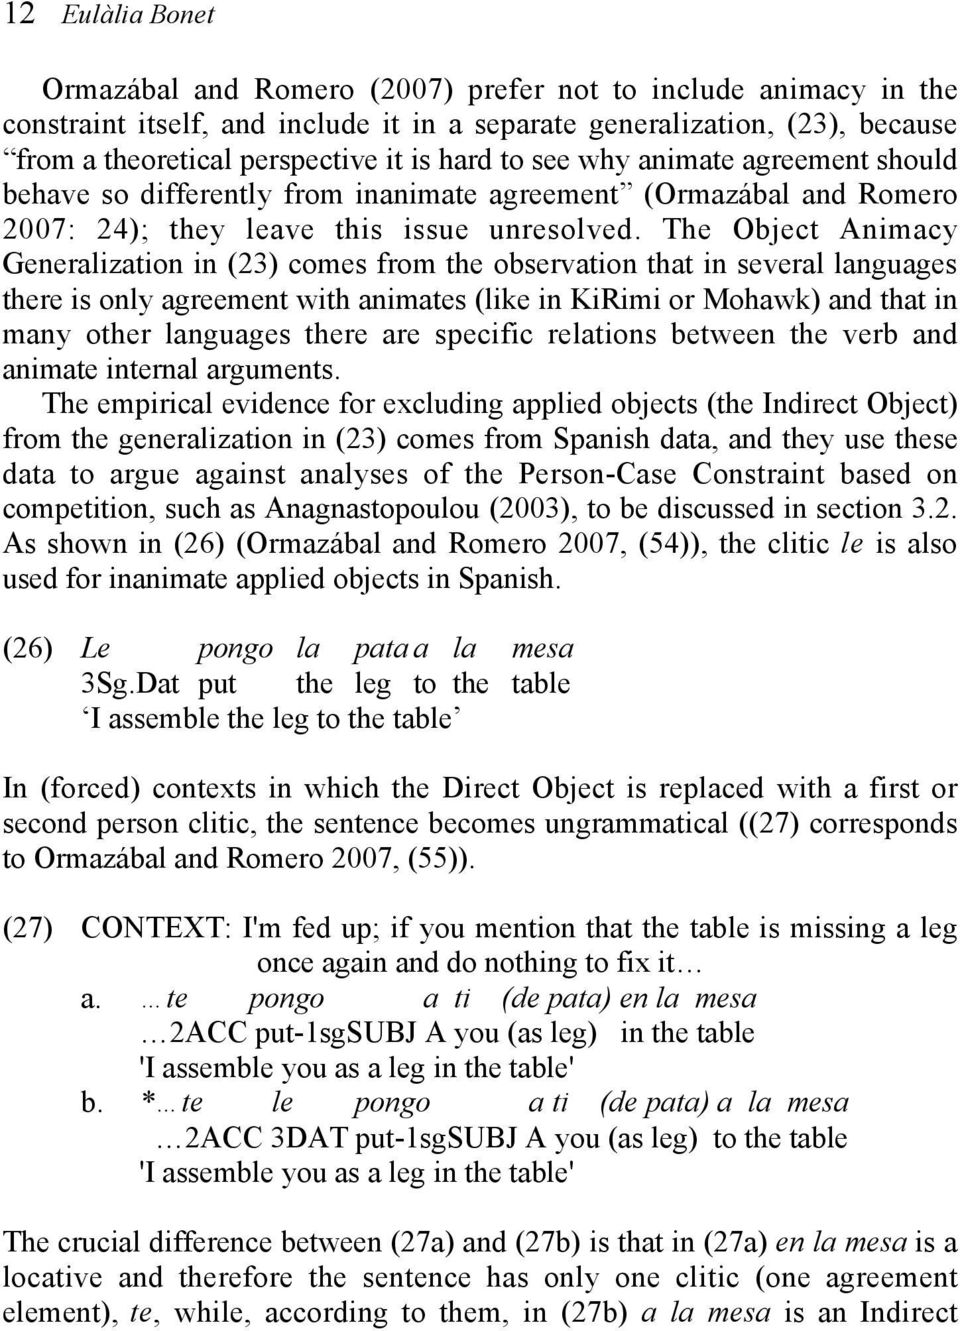 The Object Animacy Generalization in (23) comes from the observation that in several languages there is only agreement with animates (like in KiRimi or Mohawk) and that in many other languages there